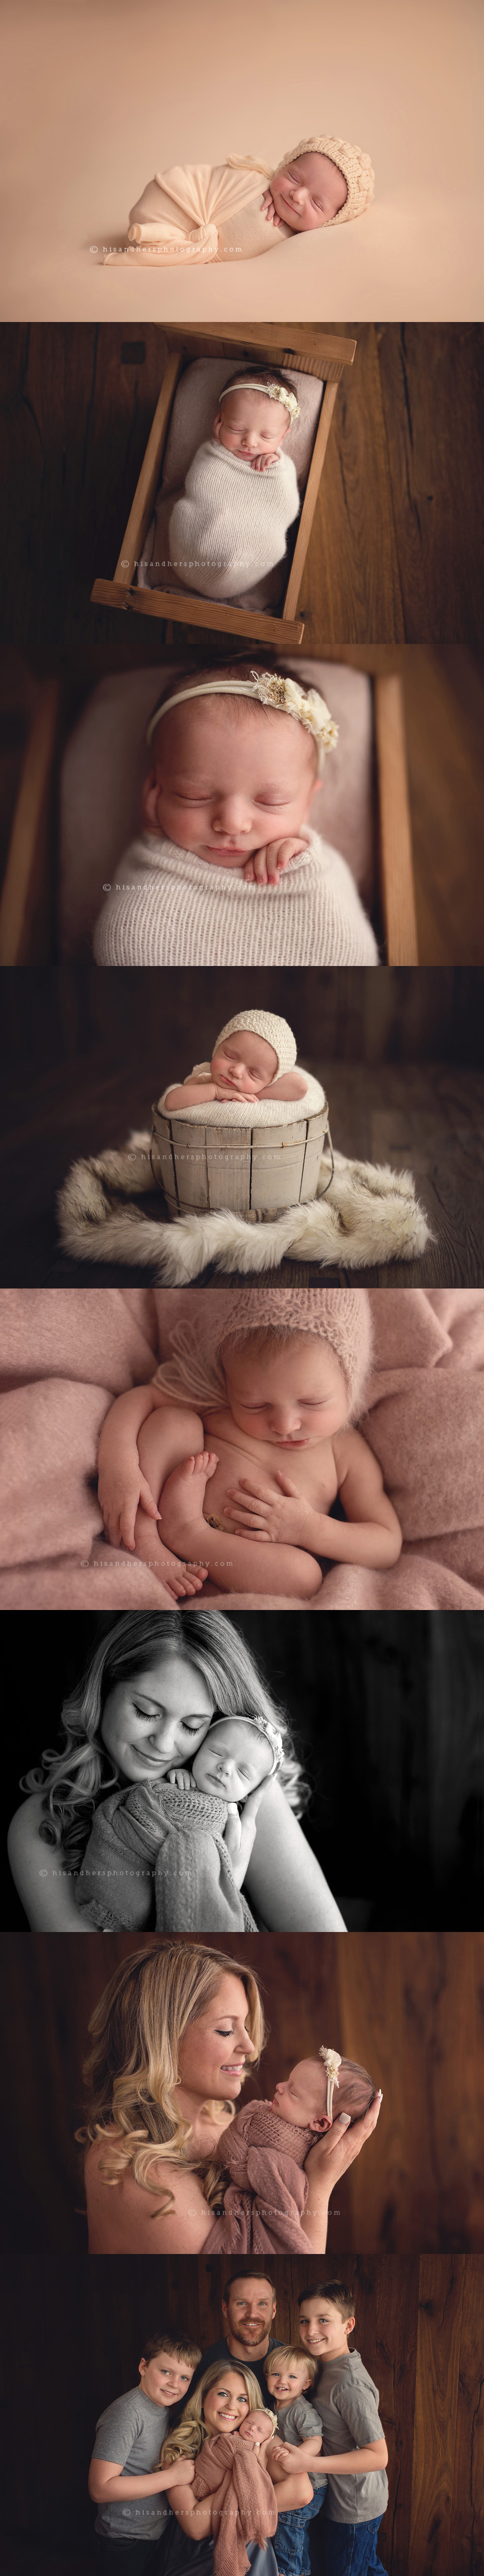 des moines iowa newborn baby photographer photography pictures portraits photography studio